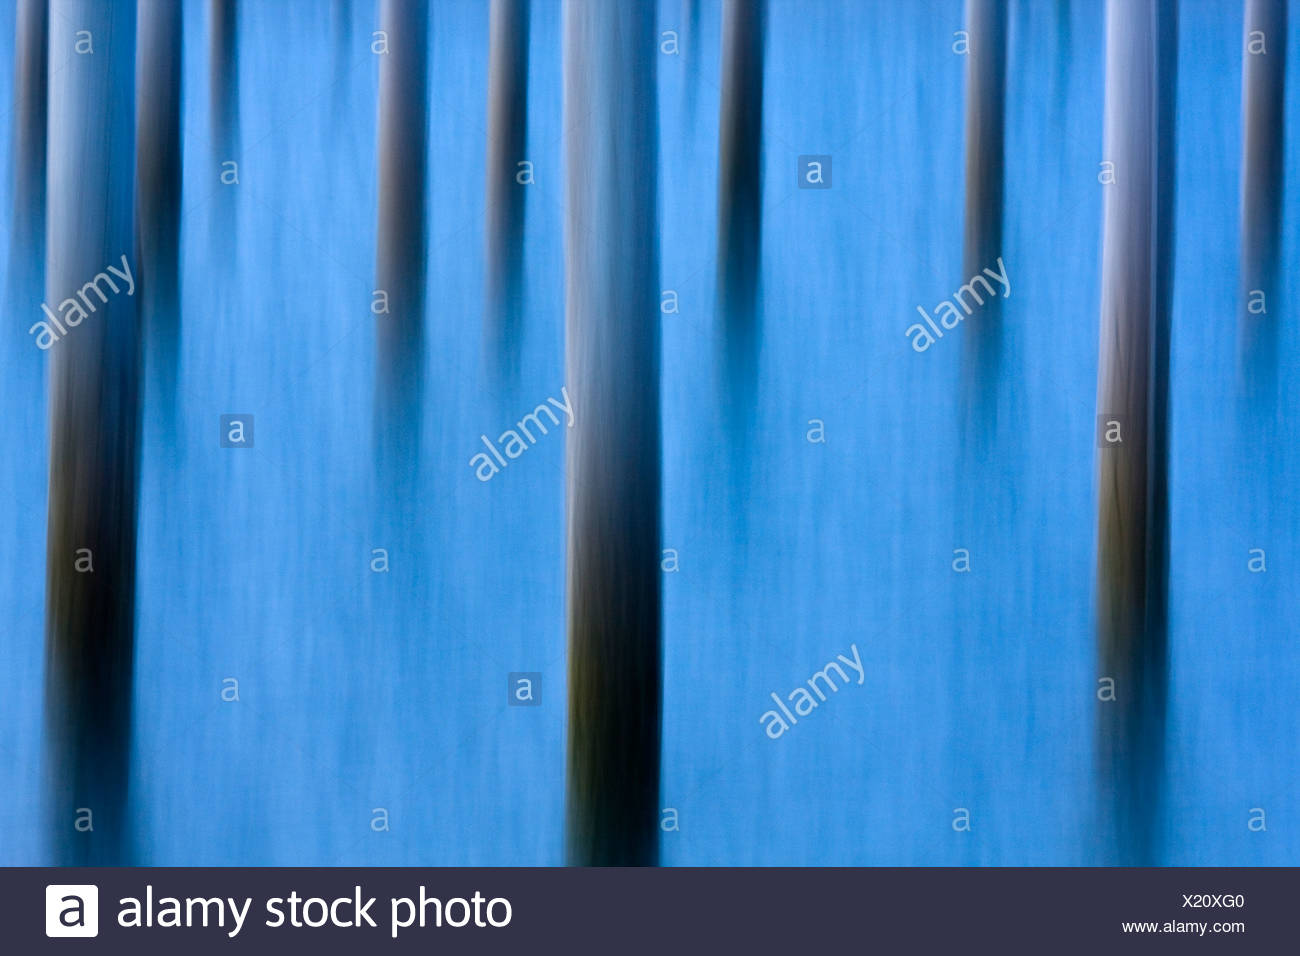 Abstract image of piers in water Stock Photo